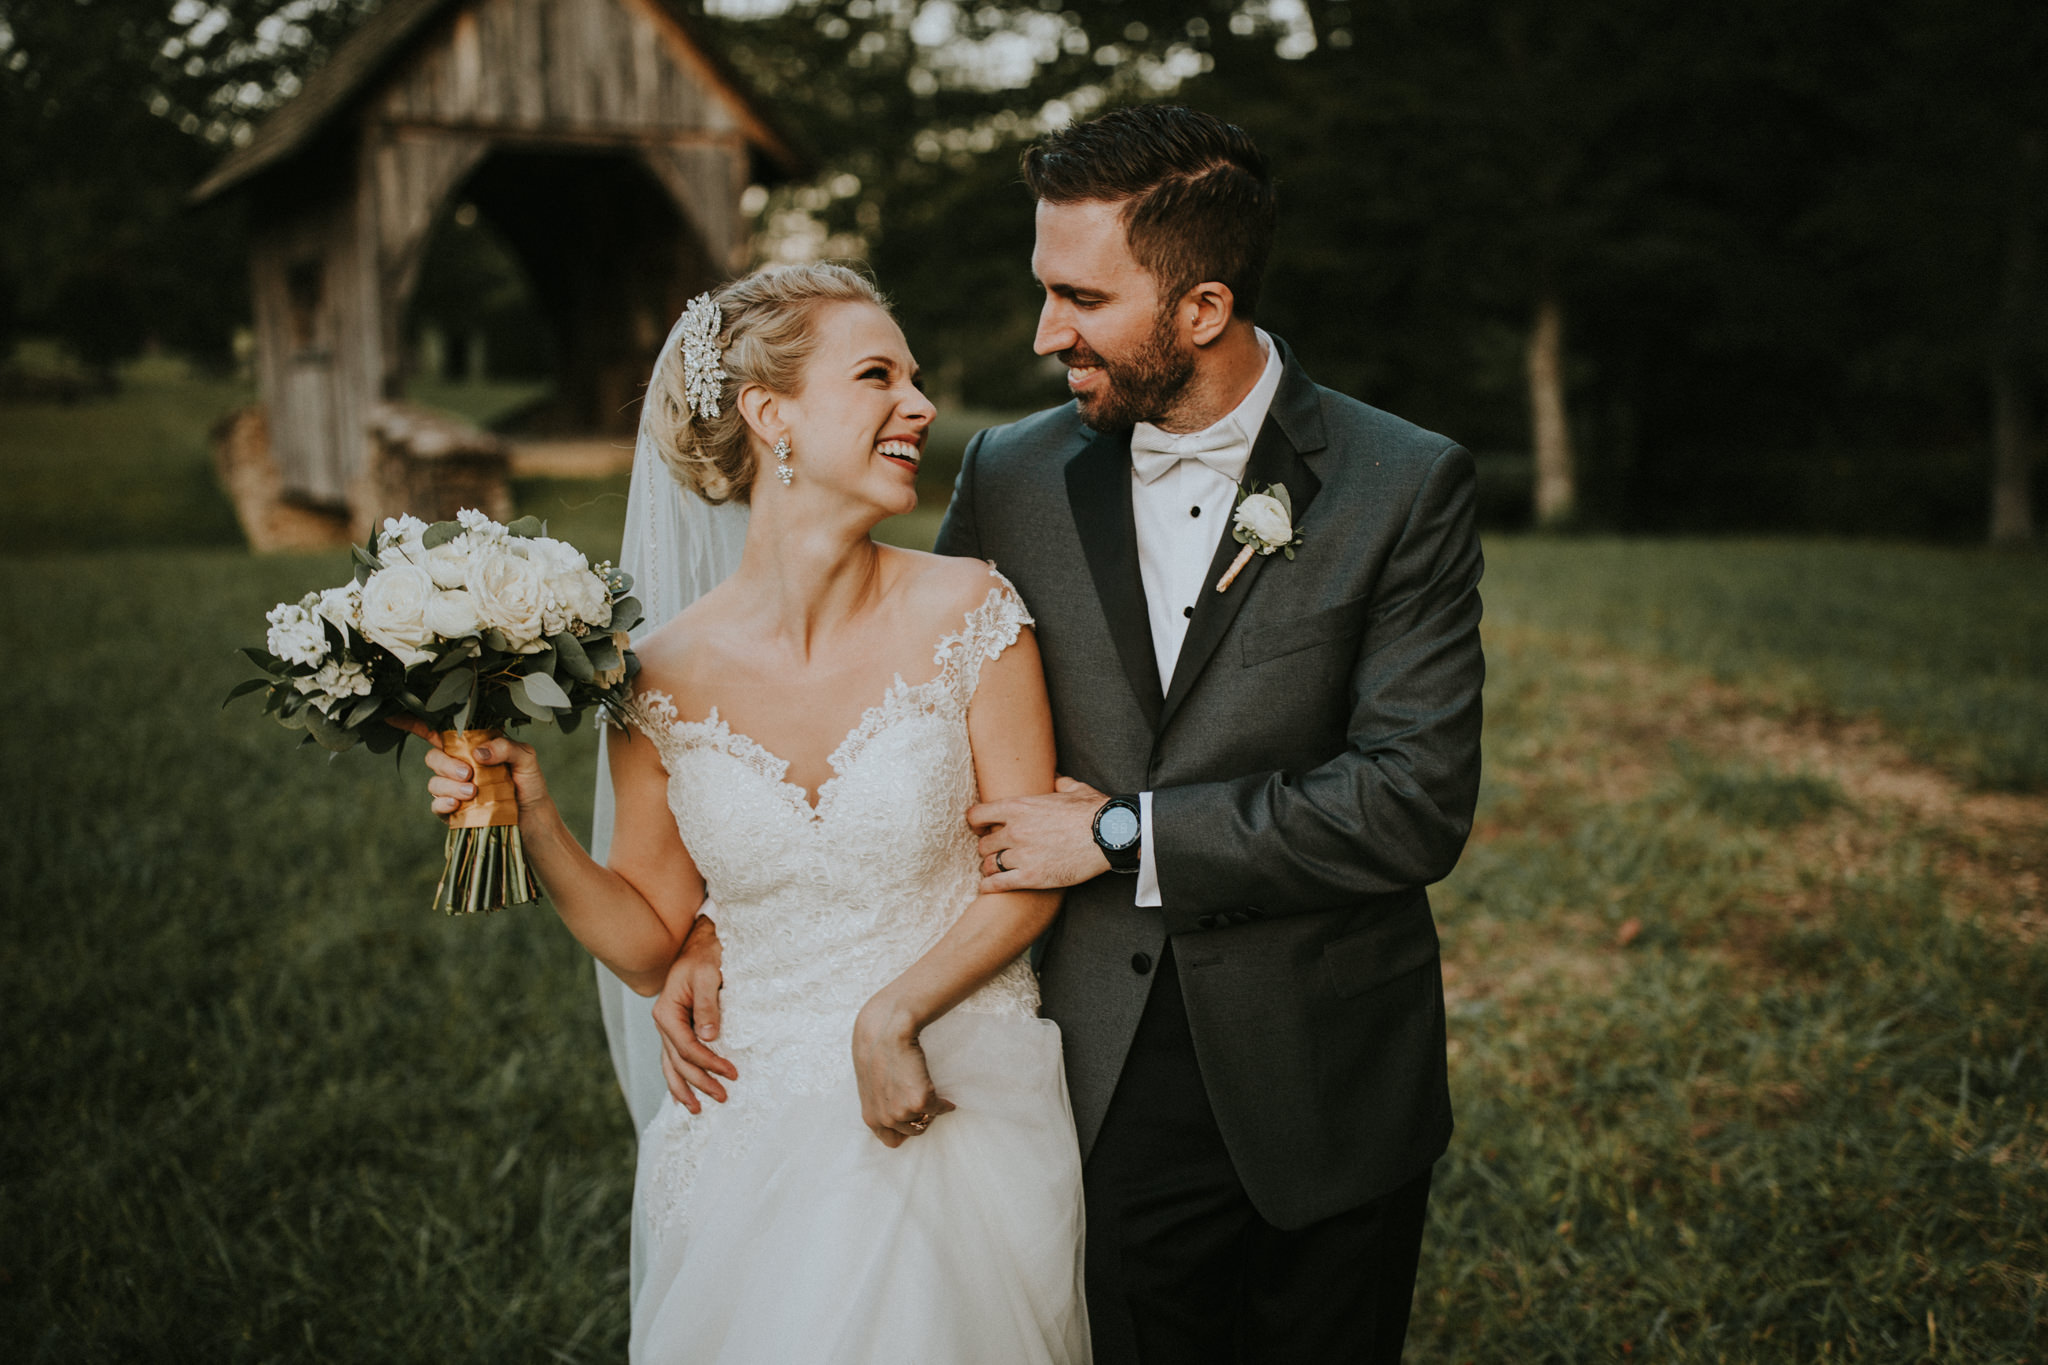 Wedding Photographer Grand Rapids